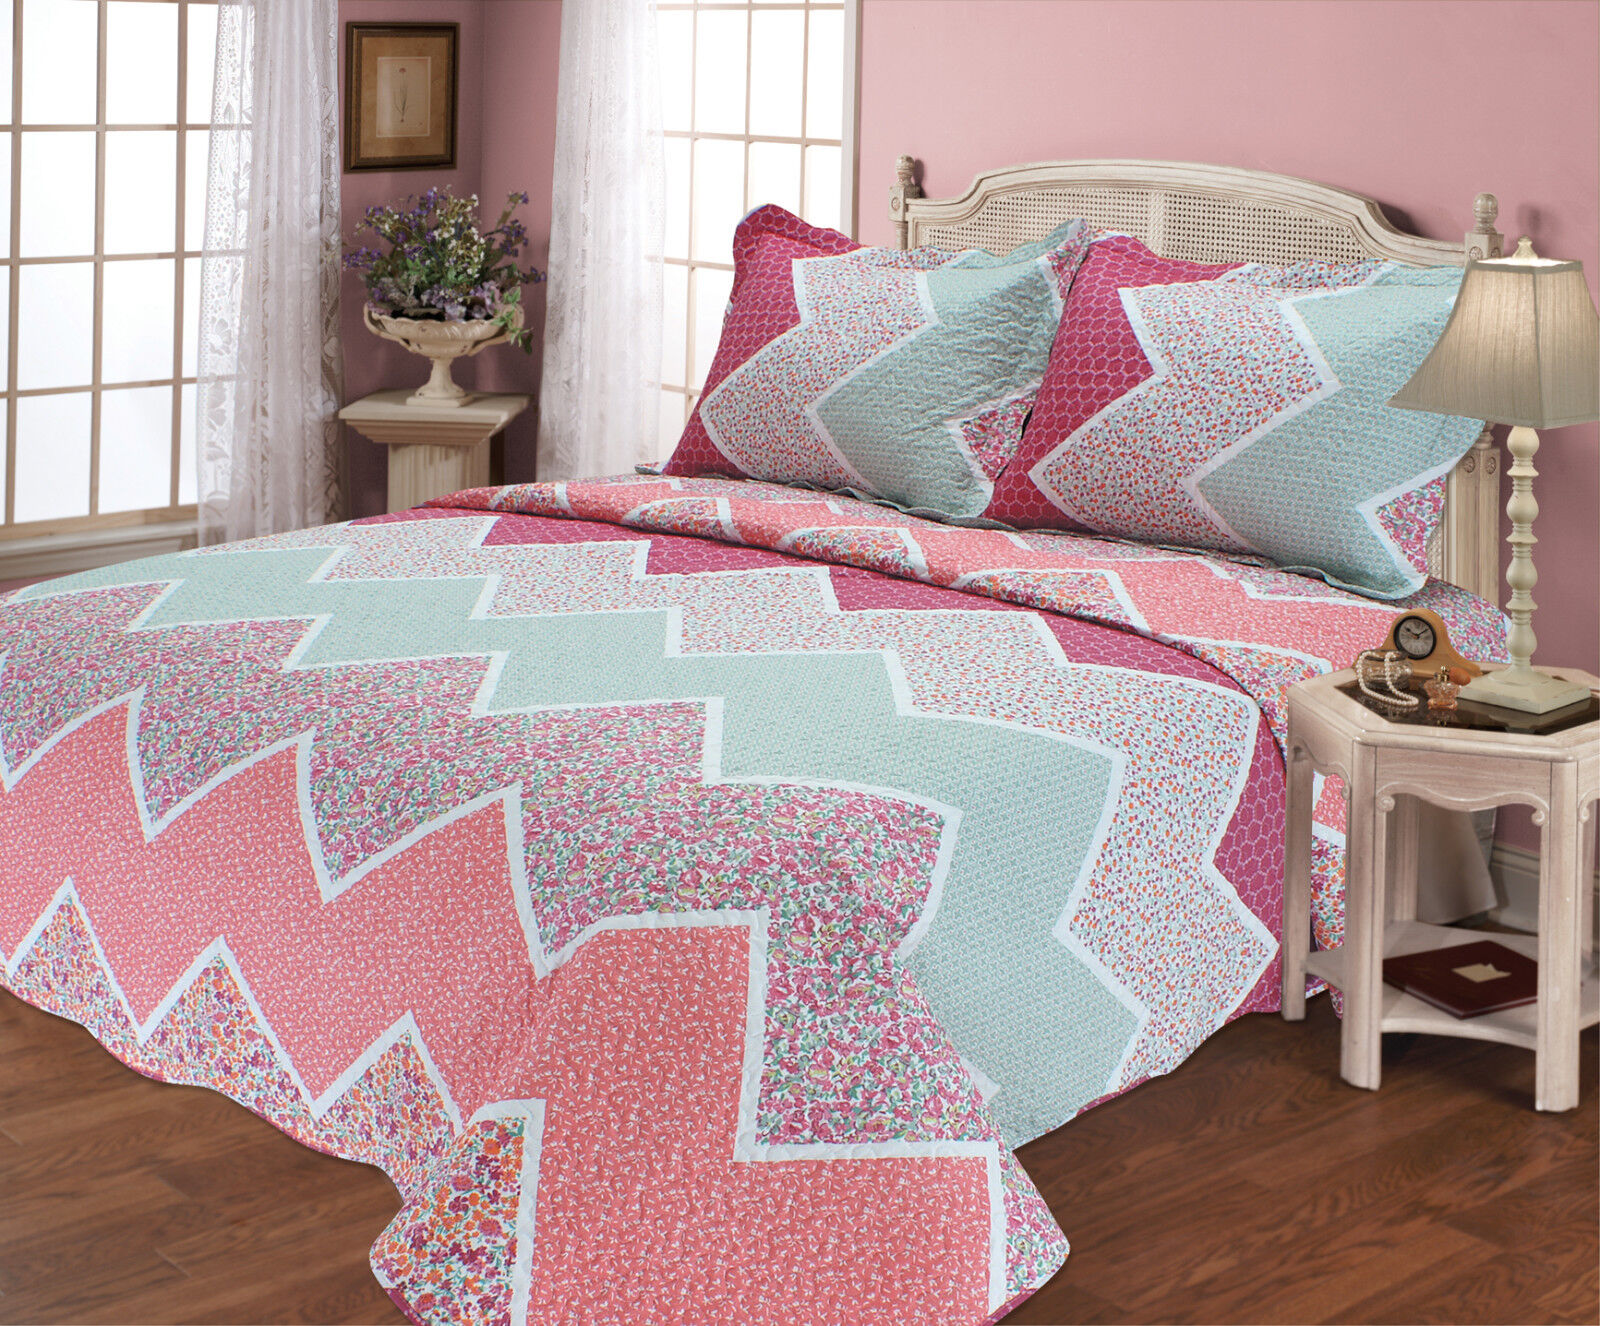 ALL FOR YOU Reversible Bedspread, Coverlet,Quilt *68* colorf